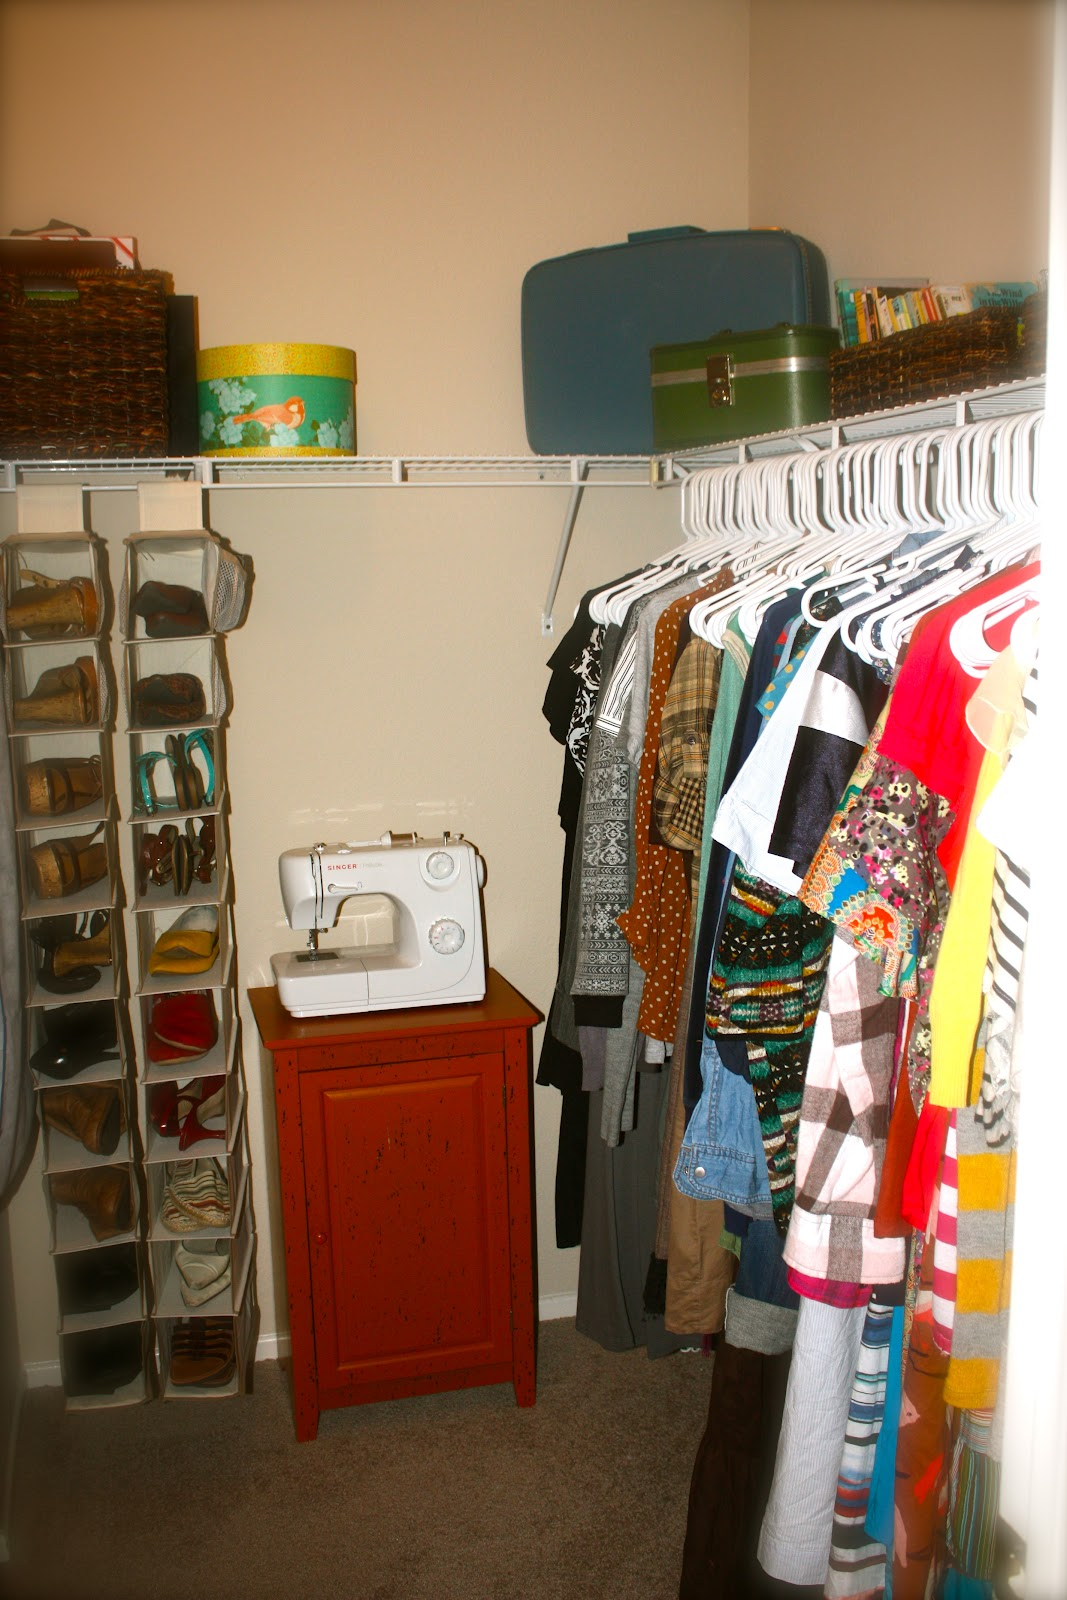 Caila-Made: On Organizing a Small Space {Guest Post